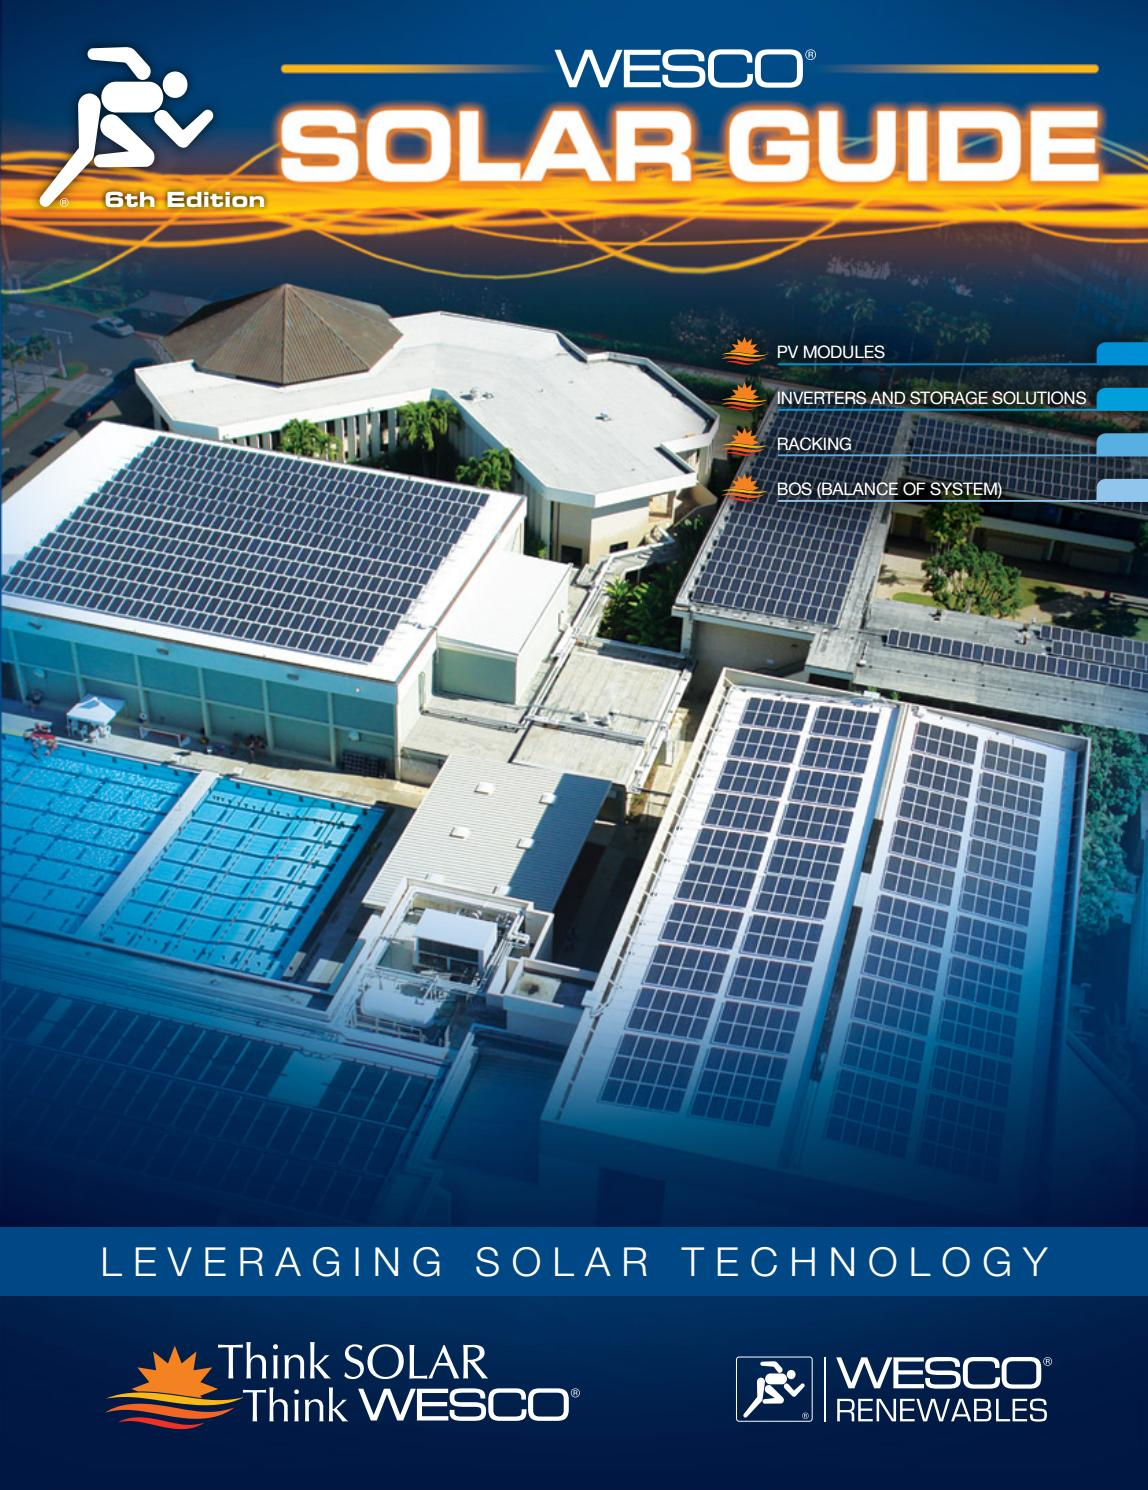 WESCO Solar Guide - 6th Edition by WESCO Distribution - issuu